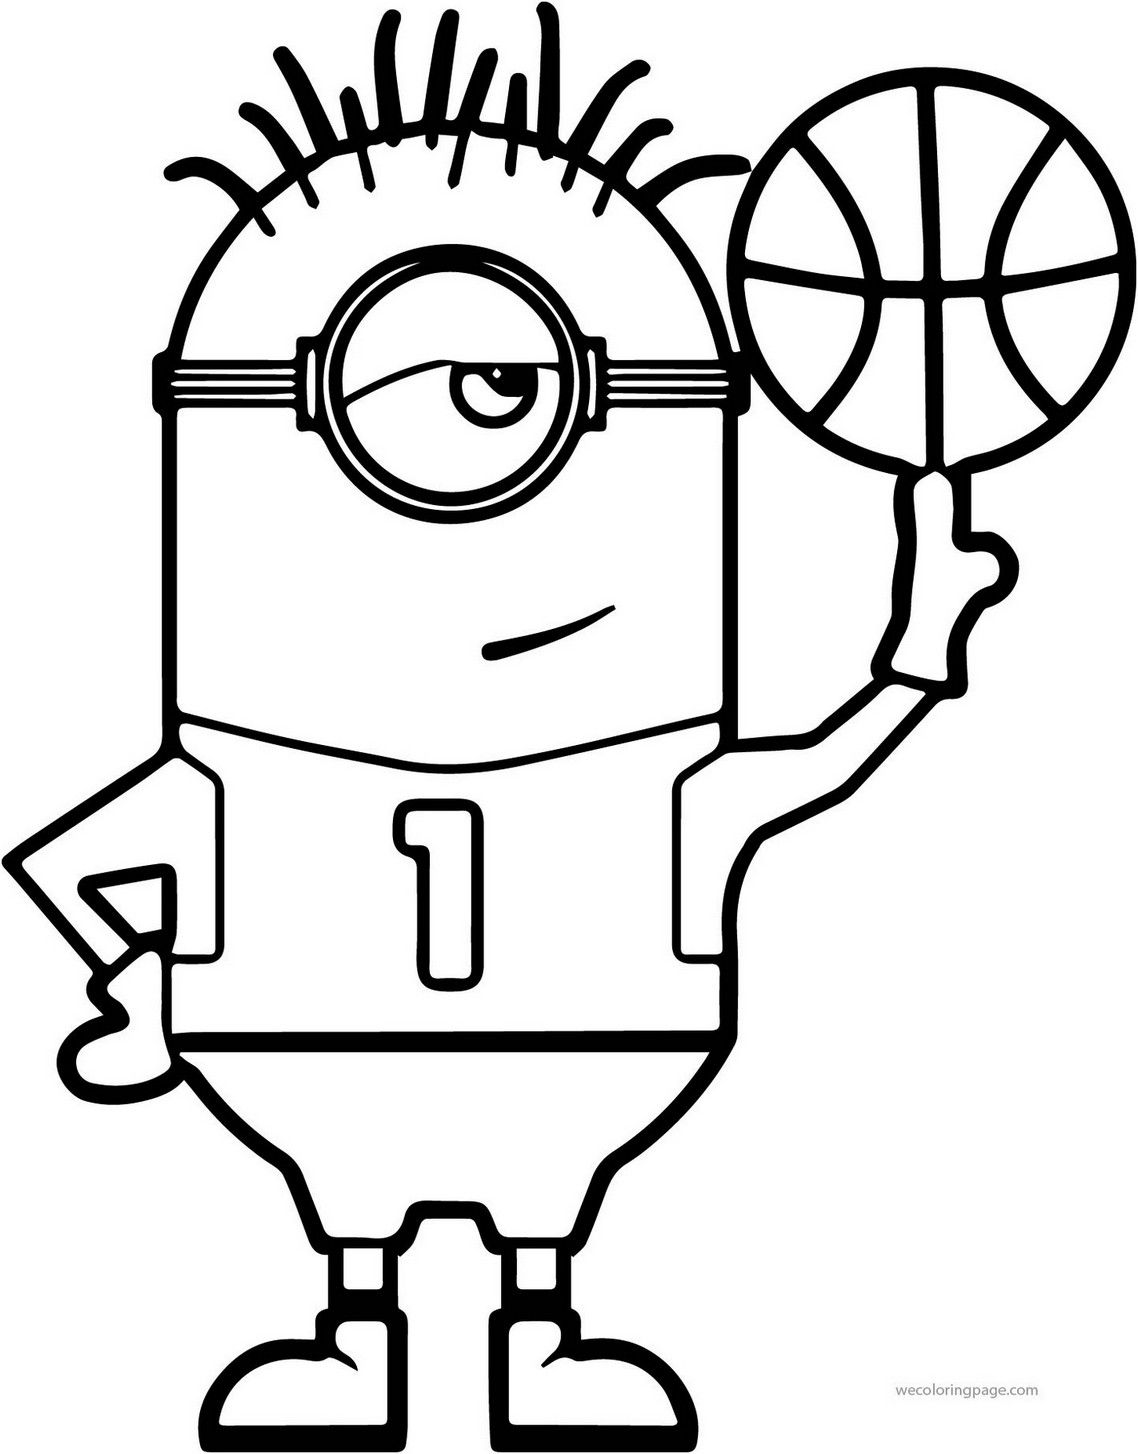 coloring page basketball hd | Coloring Board | Coloring pages ...